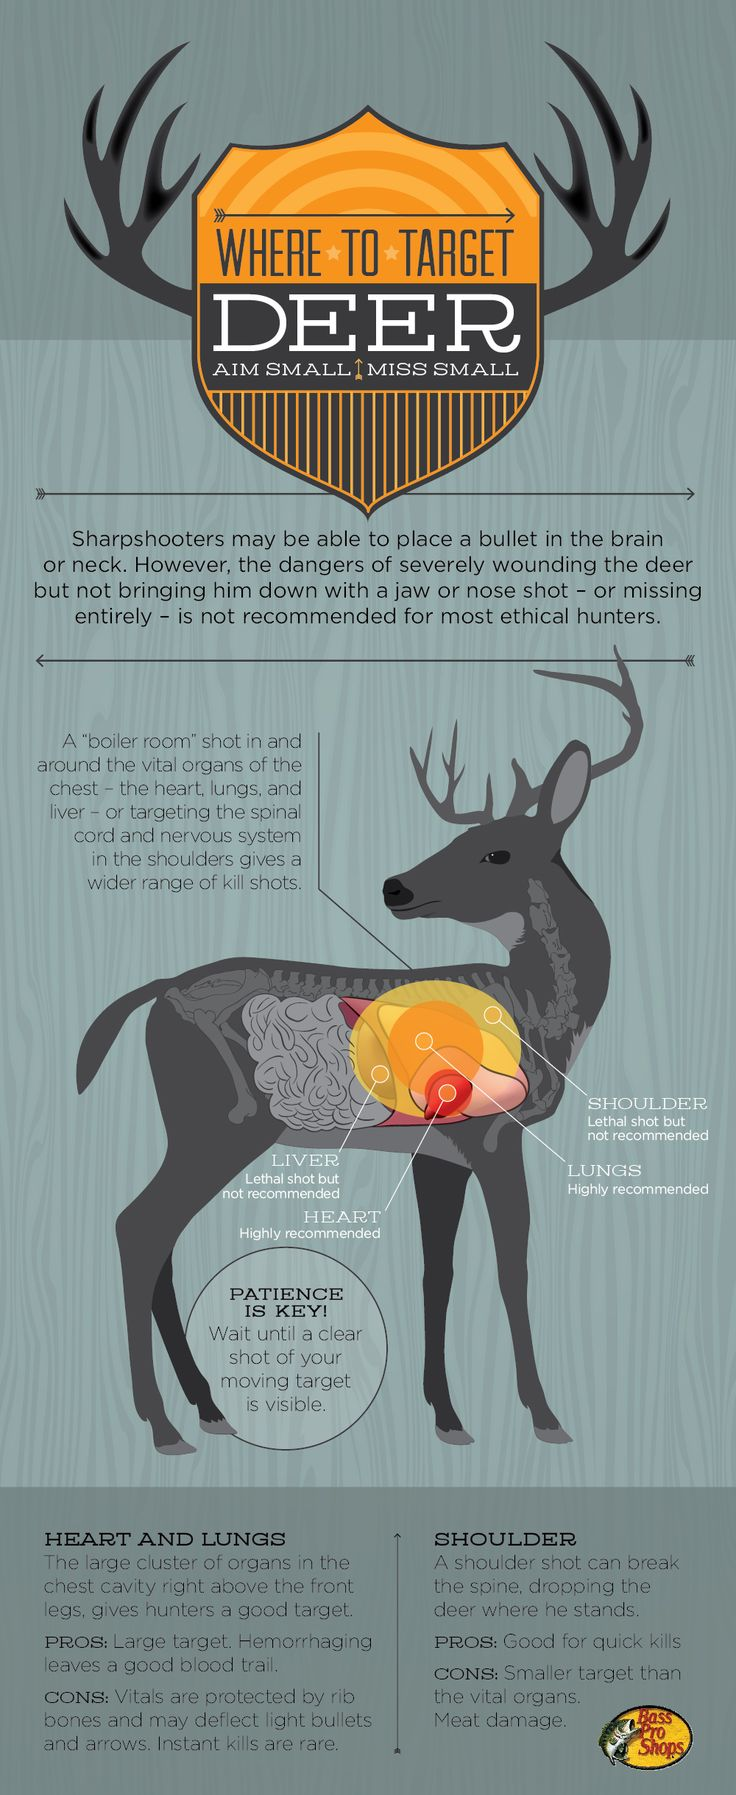 Where to target deer for the most ethical shot #infographic #huntingtips